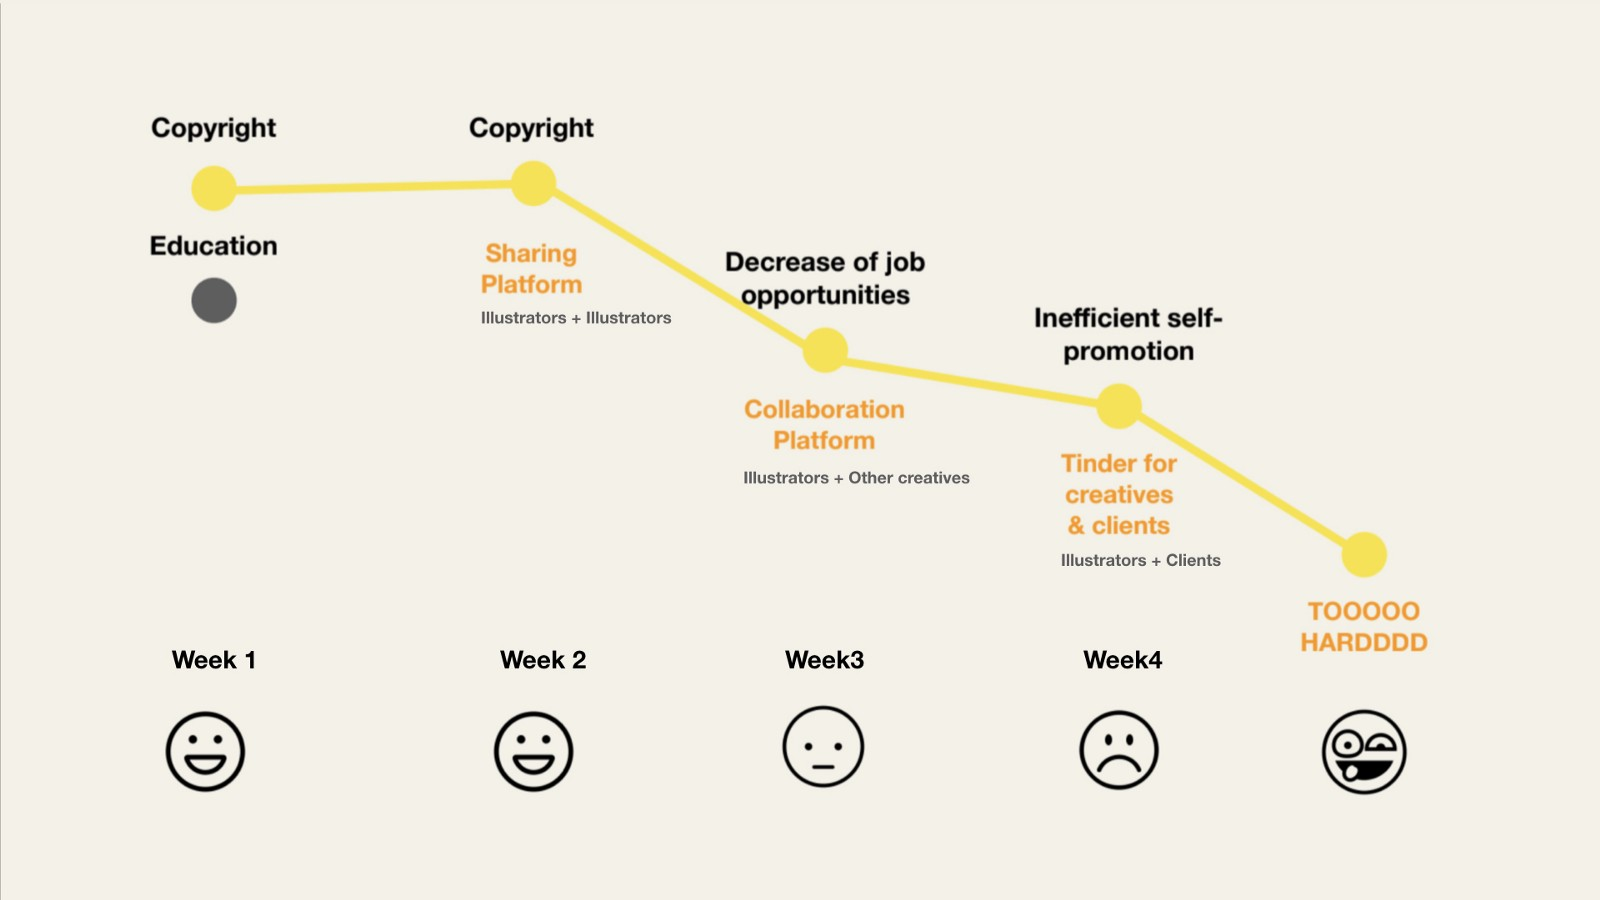 The journey map of our team in the first 6 weeks